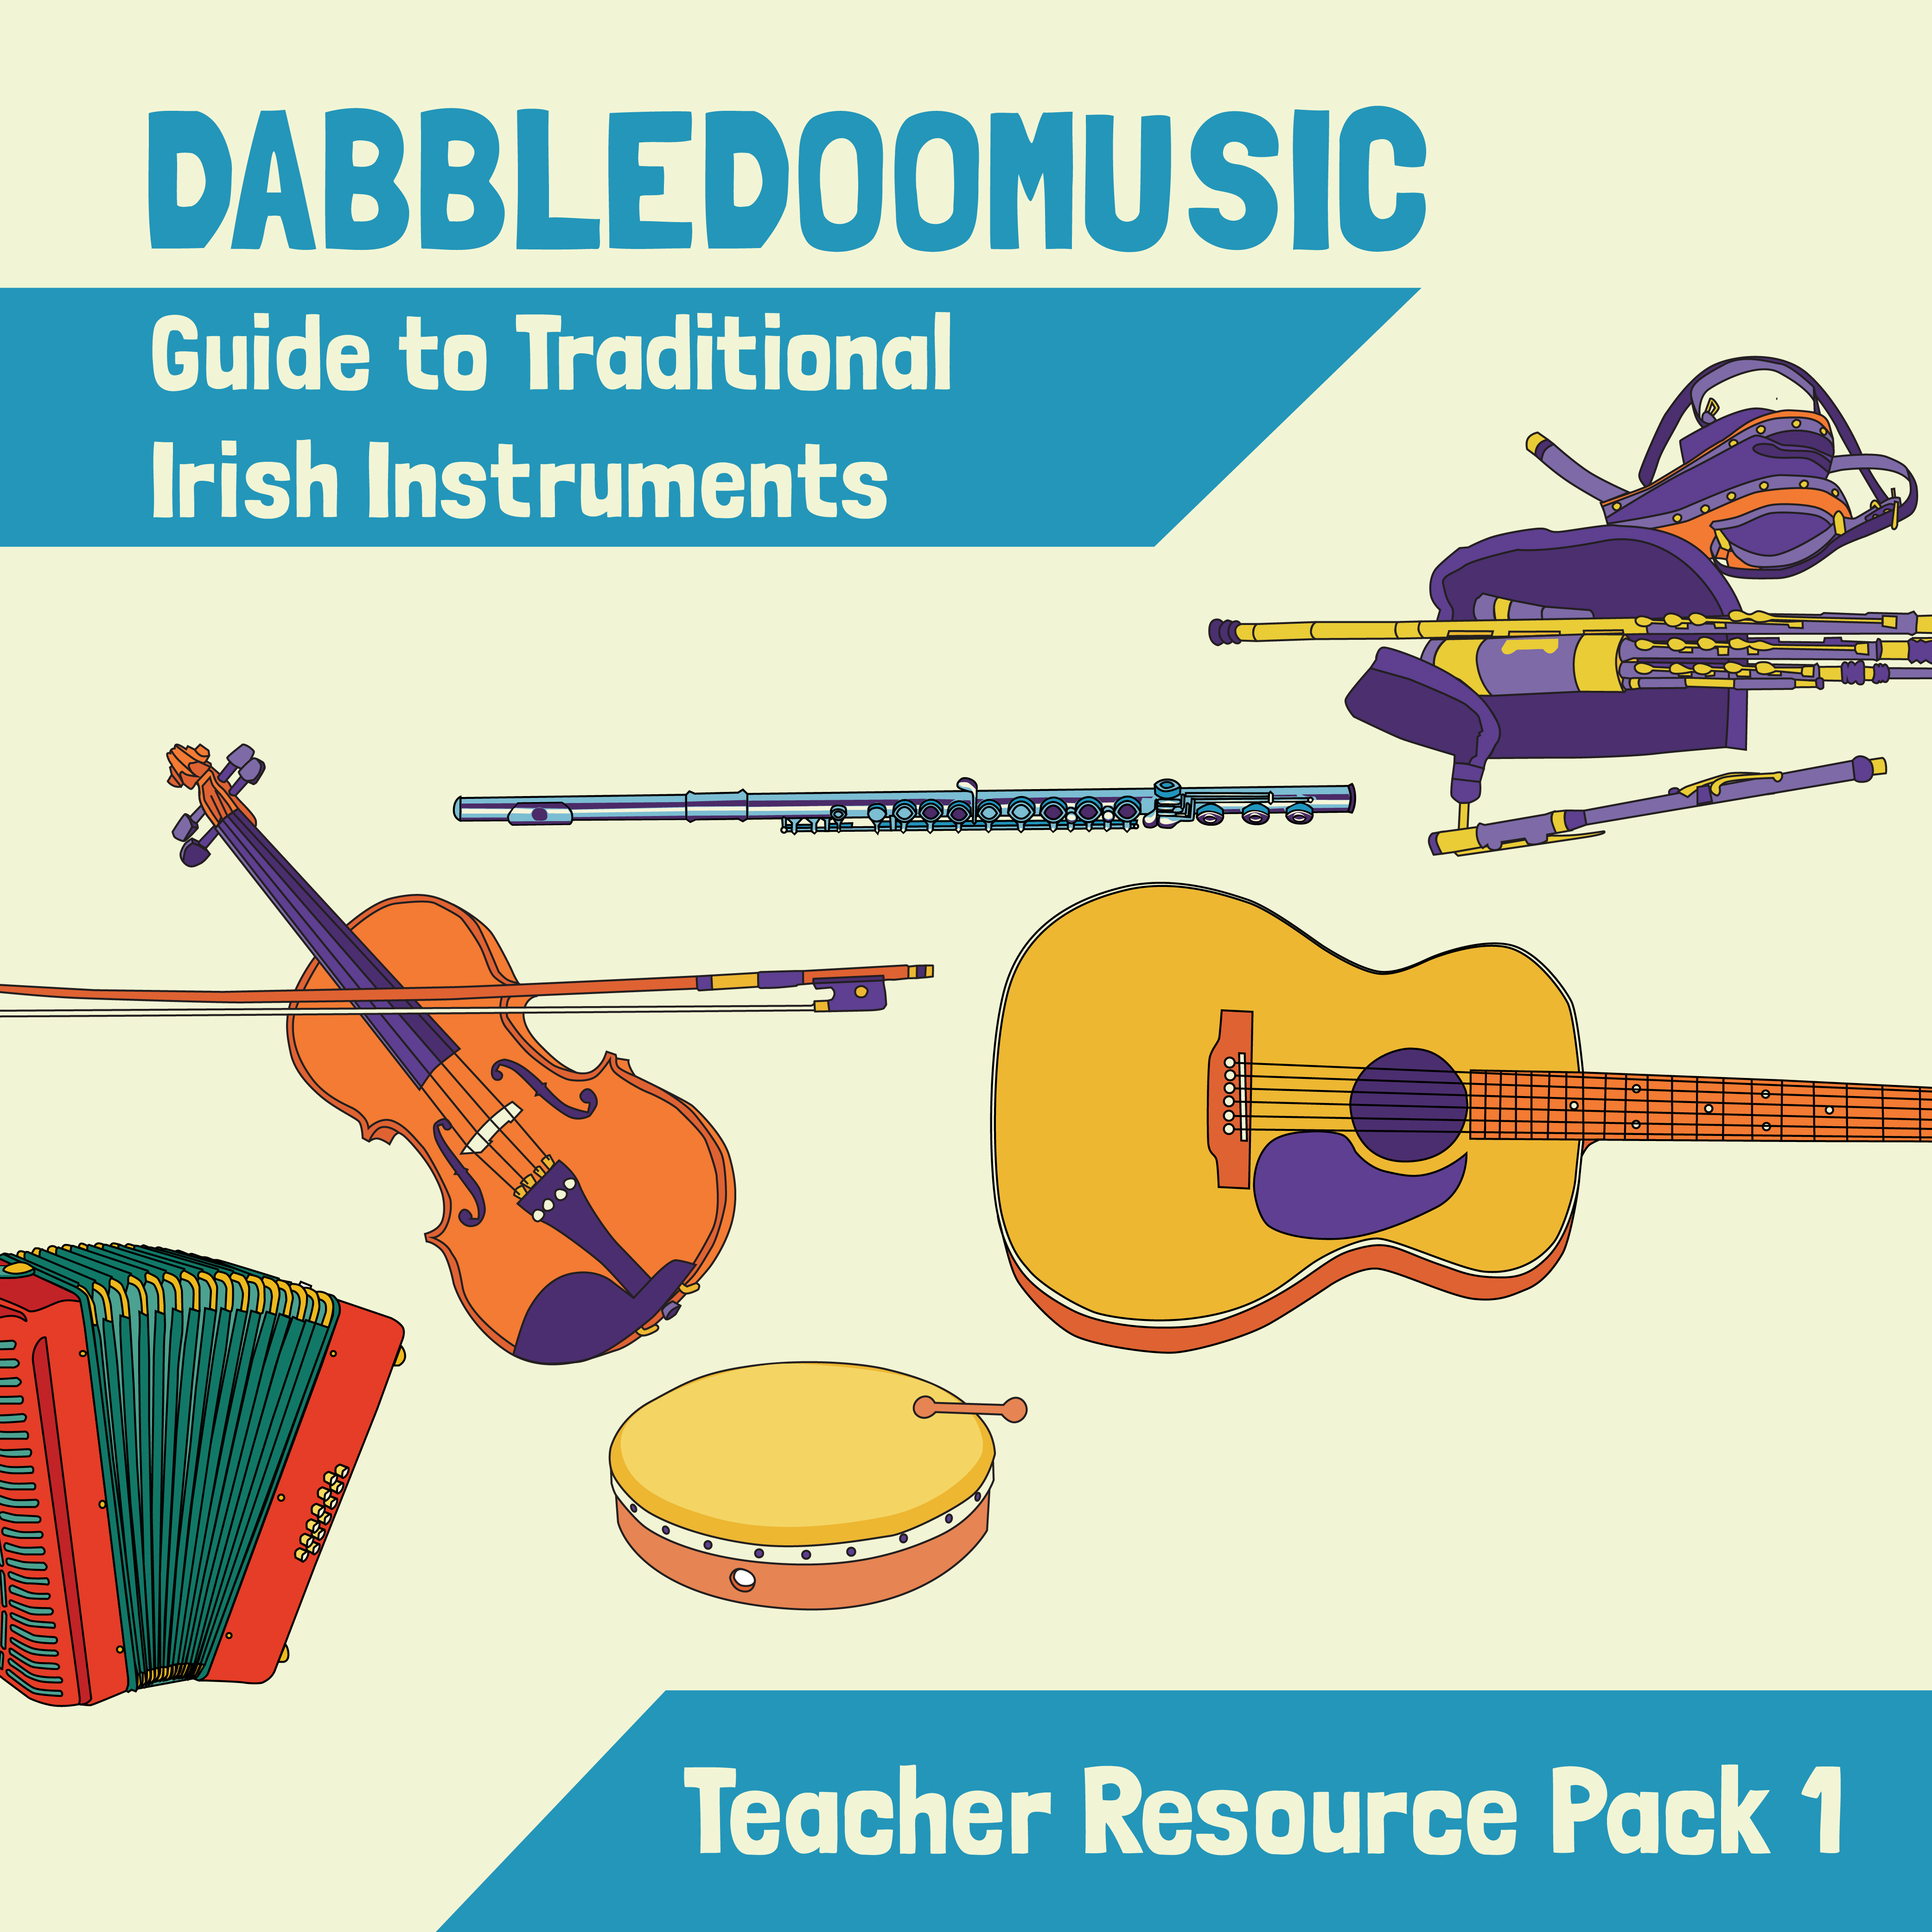 Teacher Resource Pack 1 - Guide to Traditional Irish Instruments